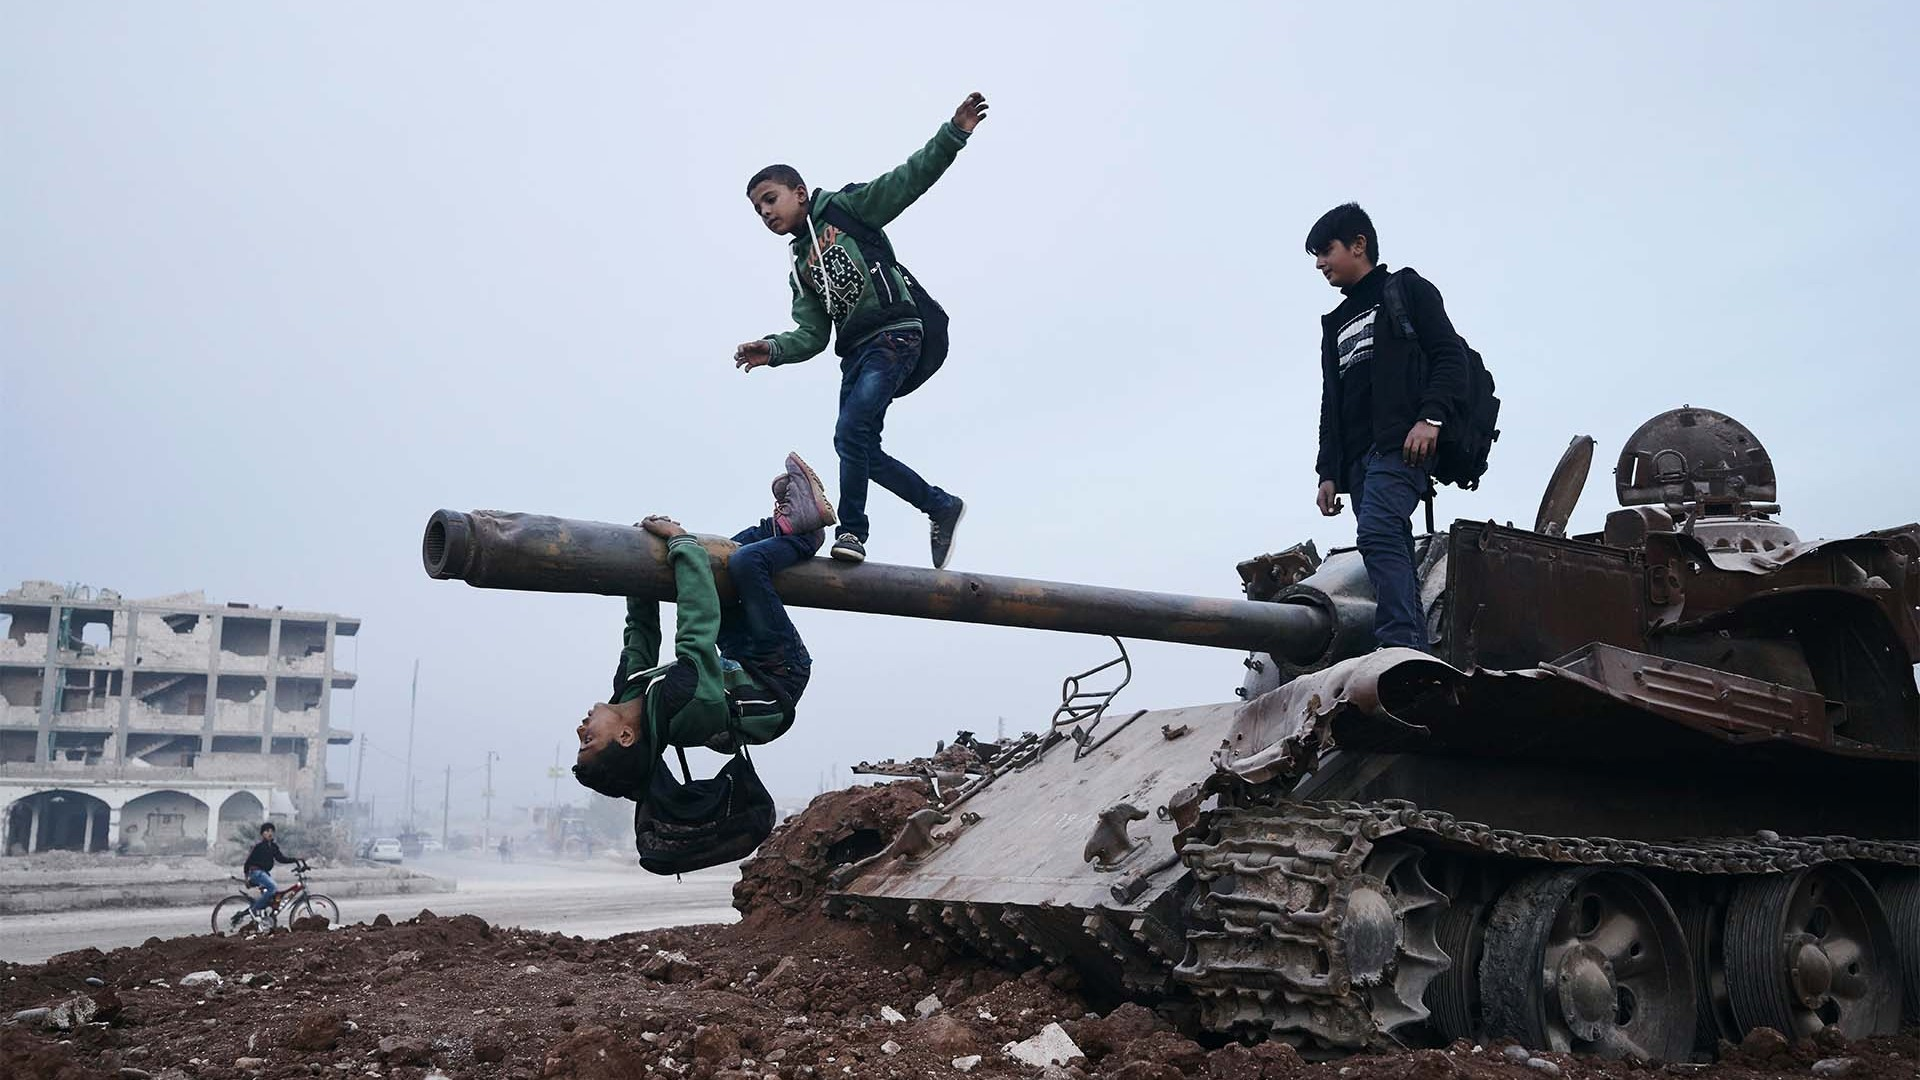 Amude, Memo, and Salar play on a destroyed ISIS tank after school